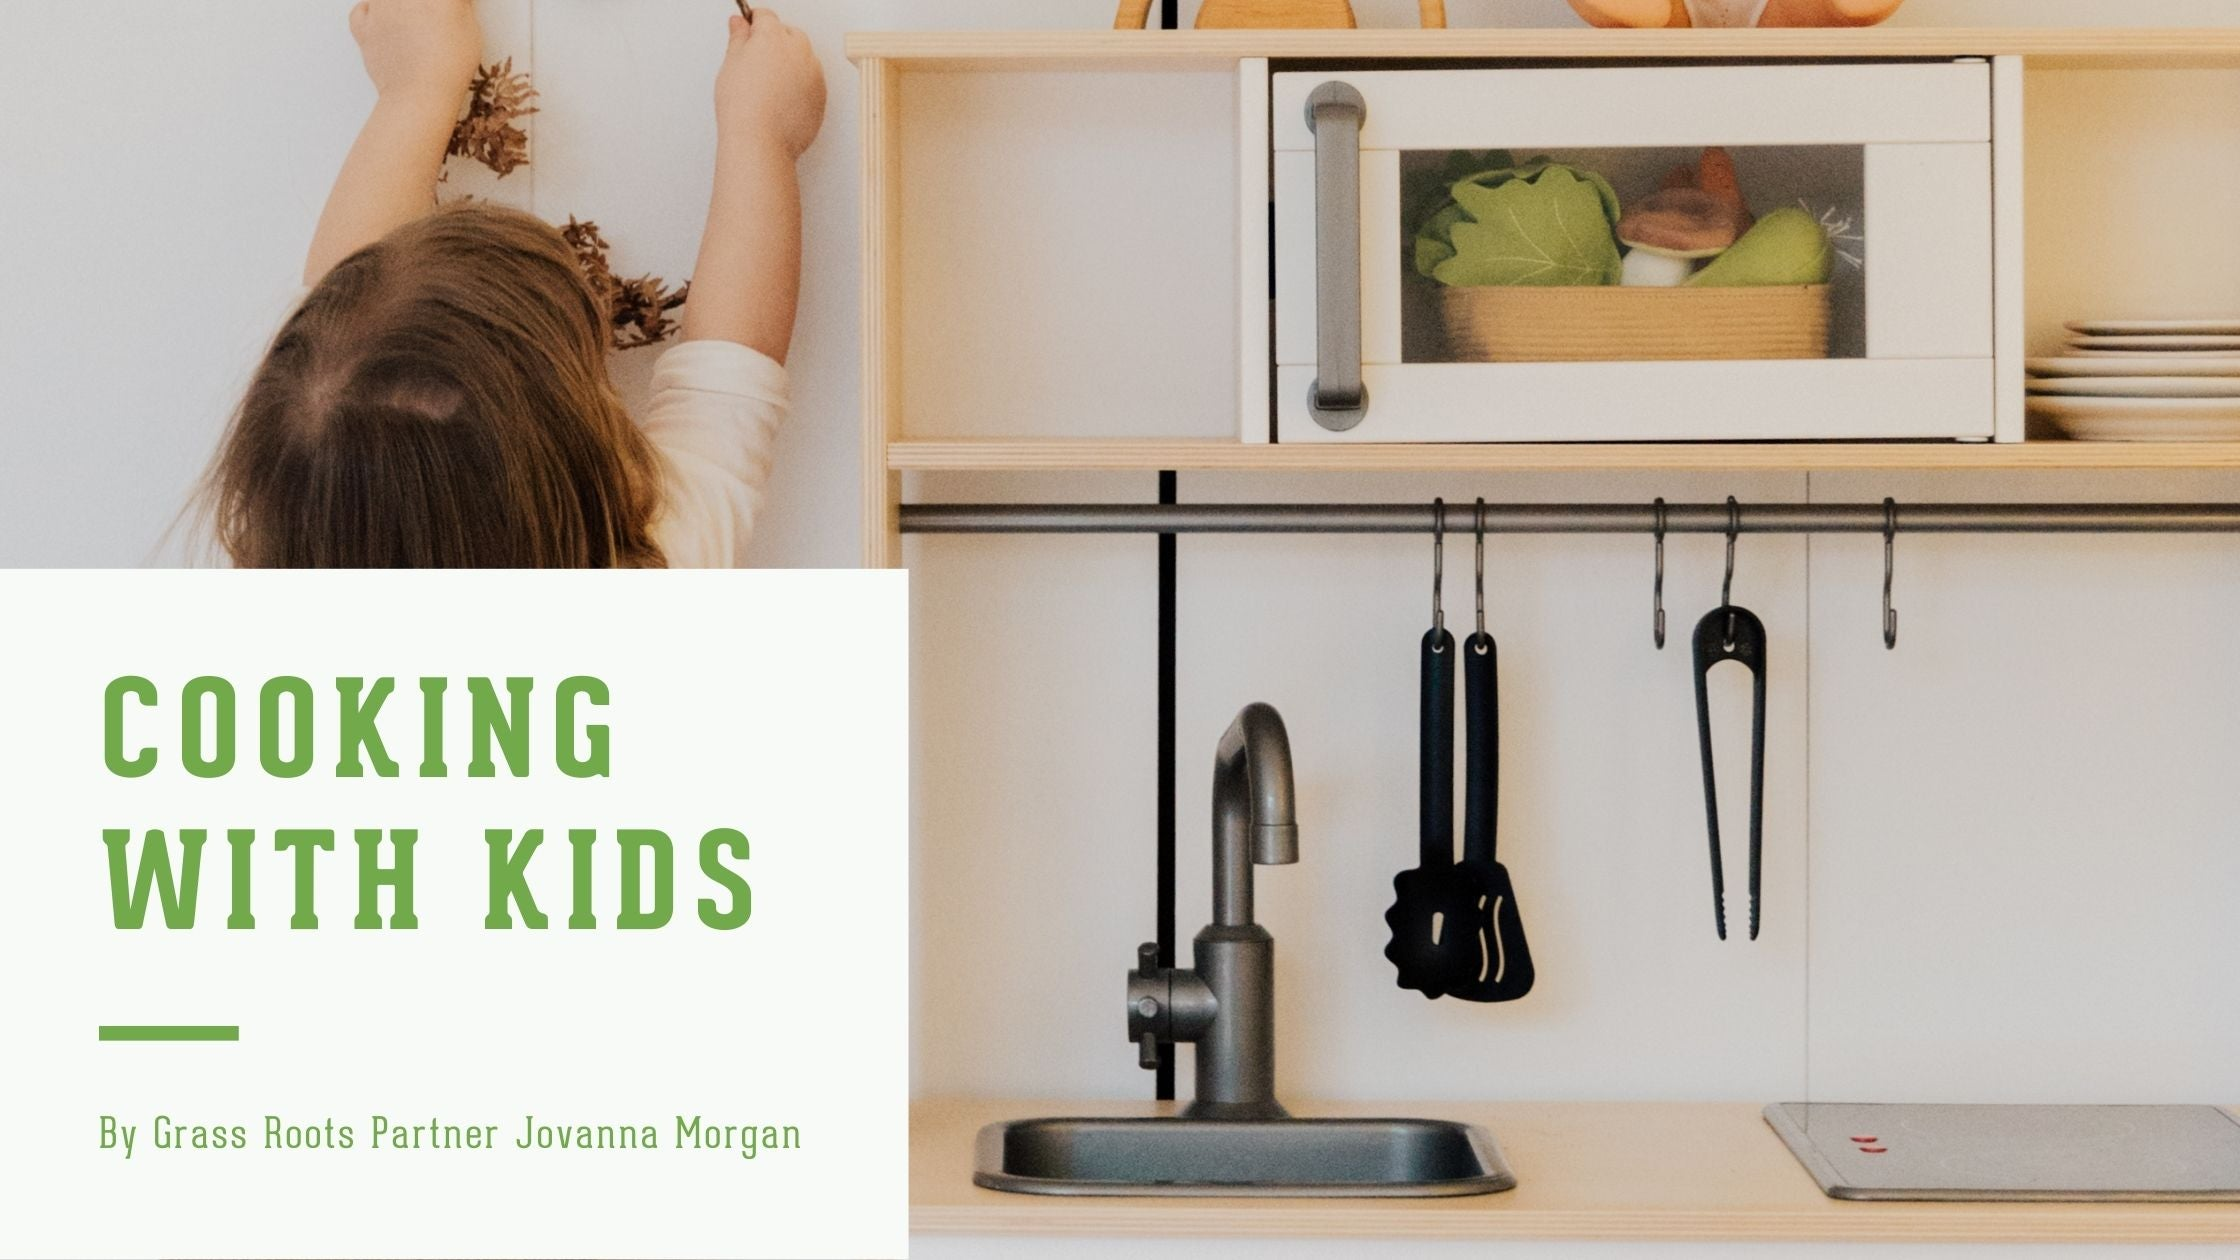 """Image of a child in a play kitchen. The words """"cooking with kids. By grass roots partner Jovanna Morgan"""" on the left side"""